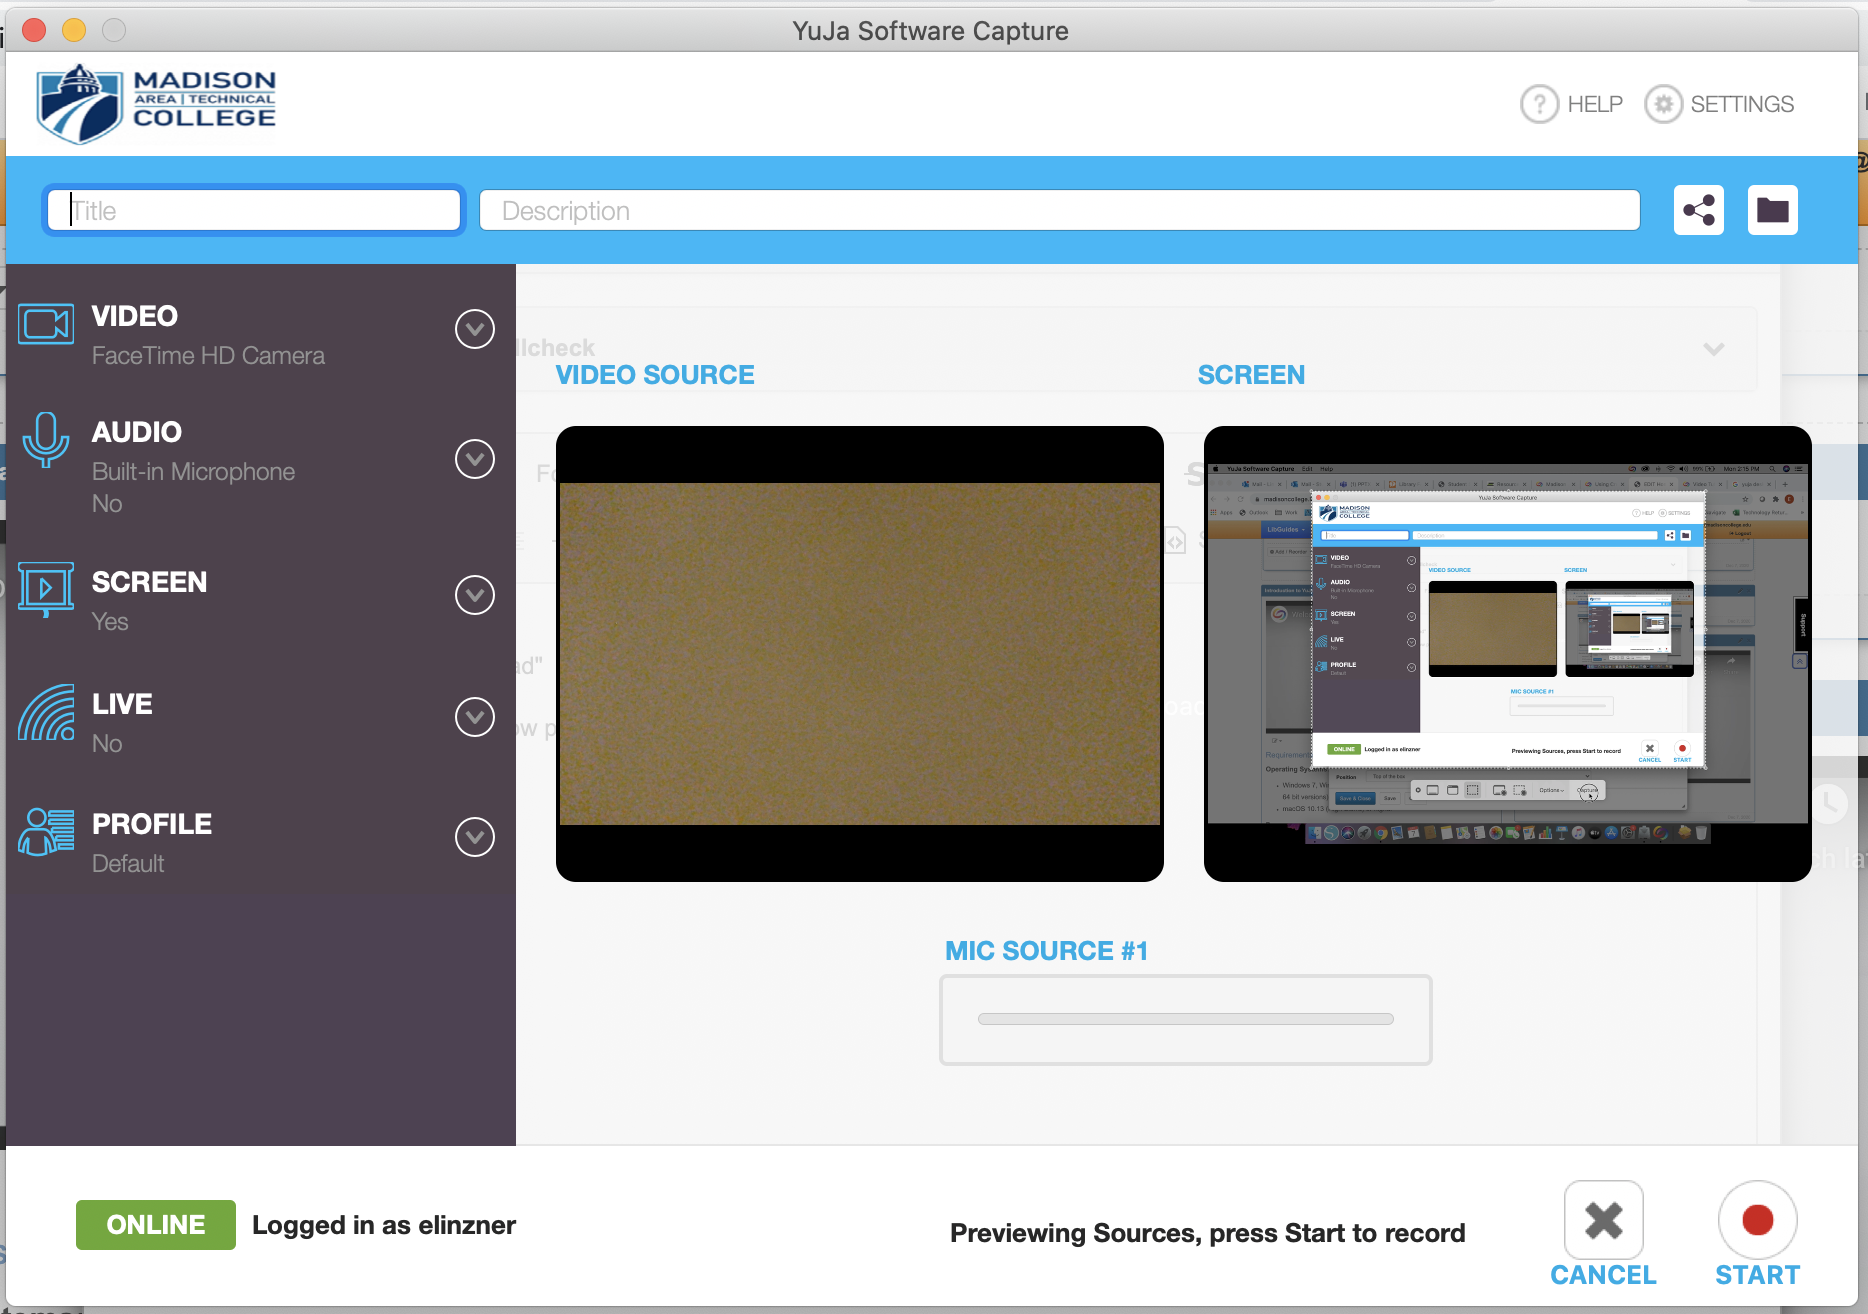 image of the YuJa recording interface